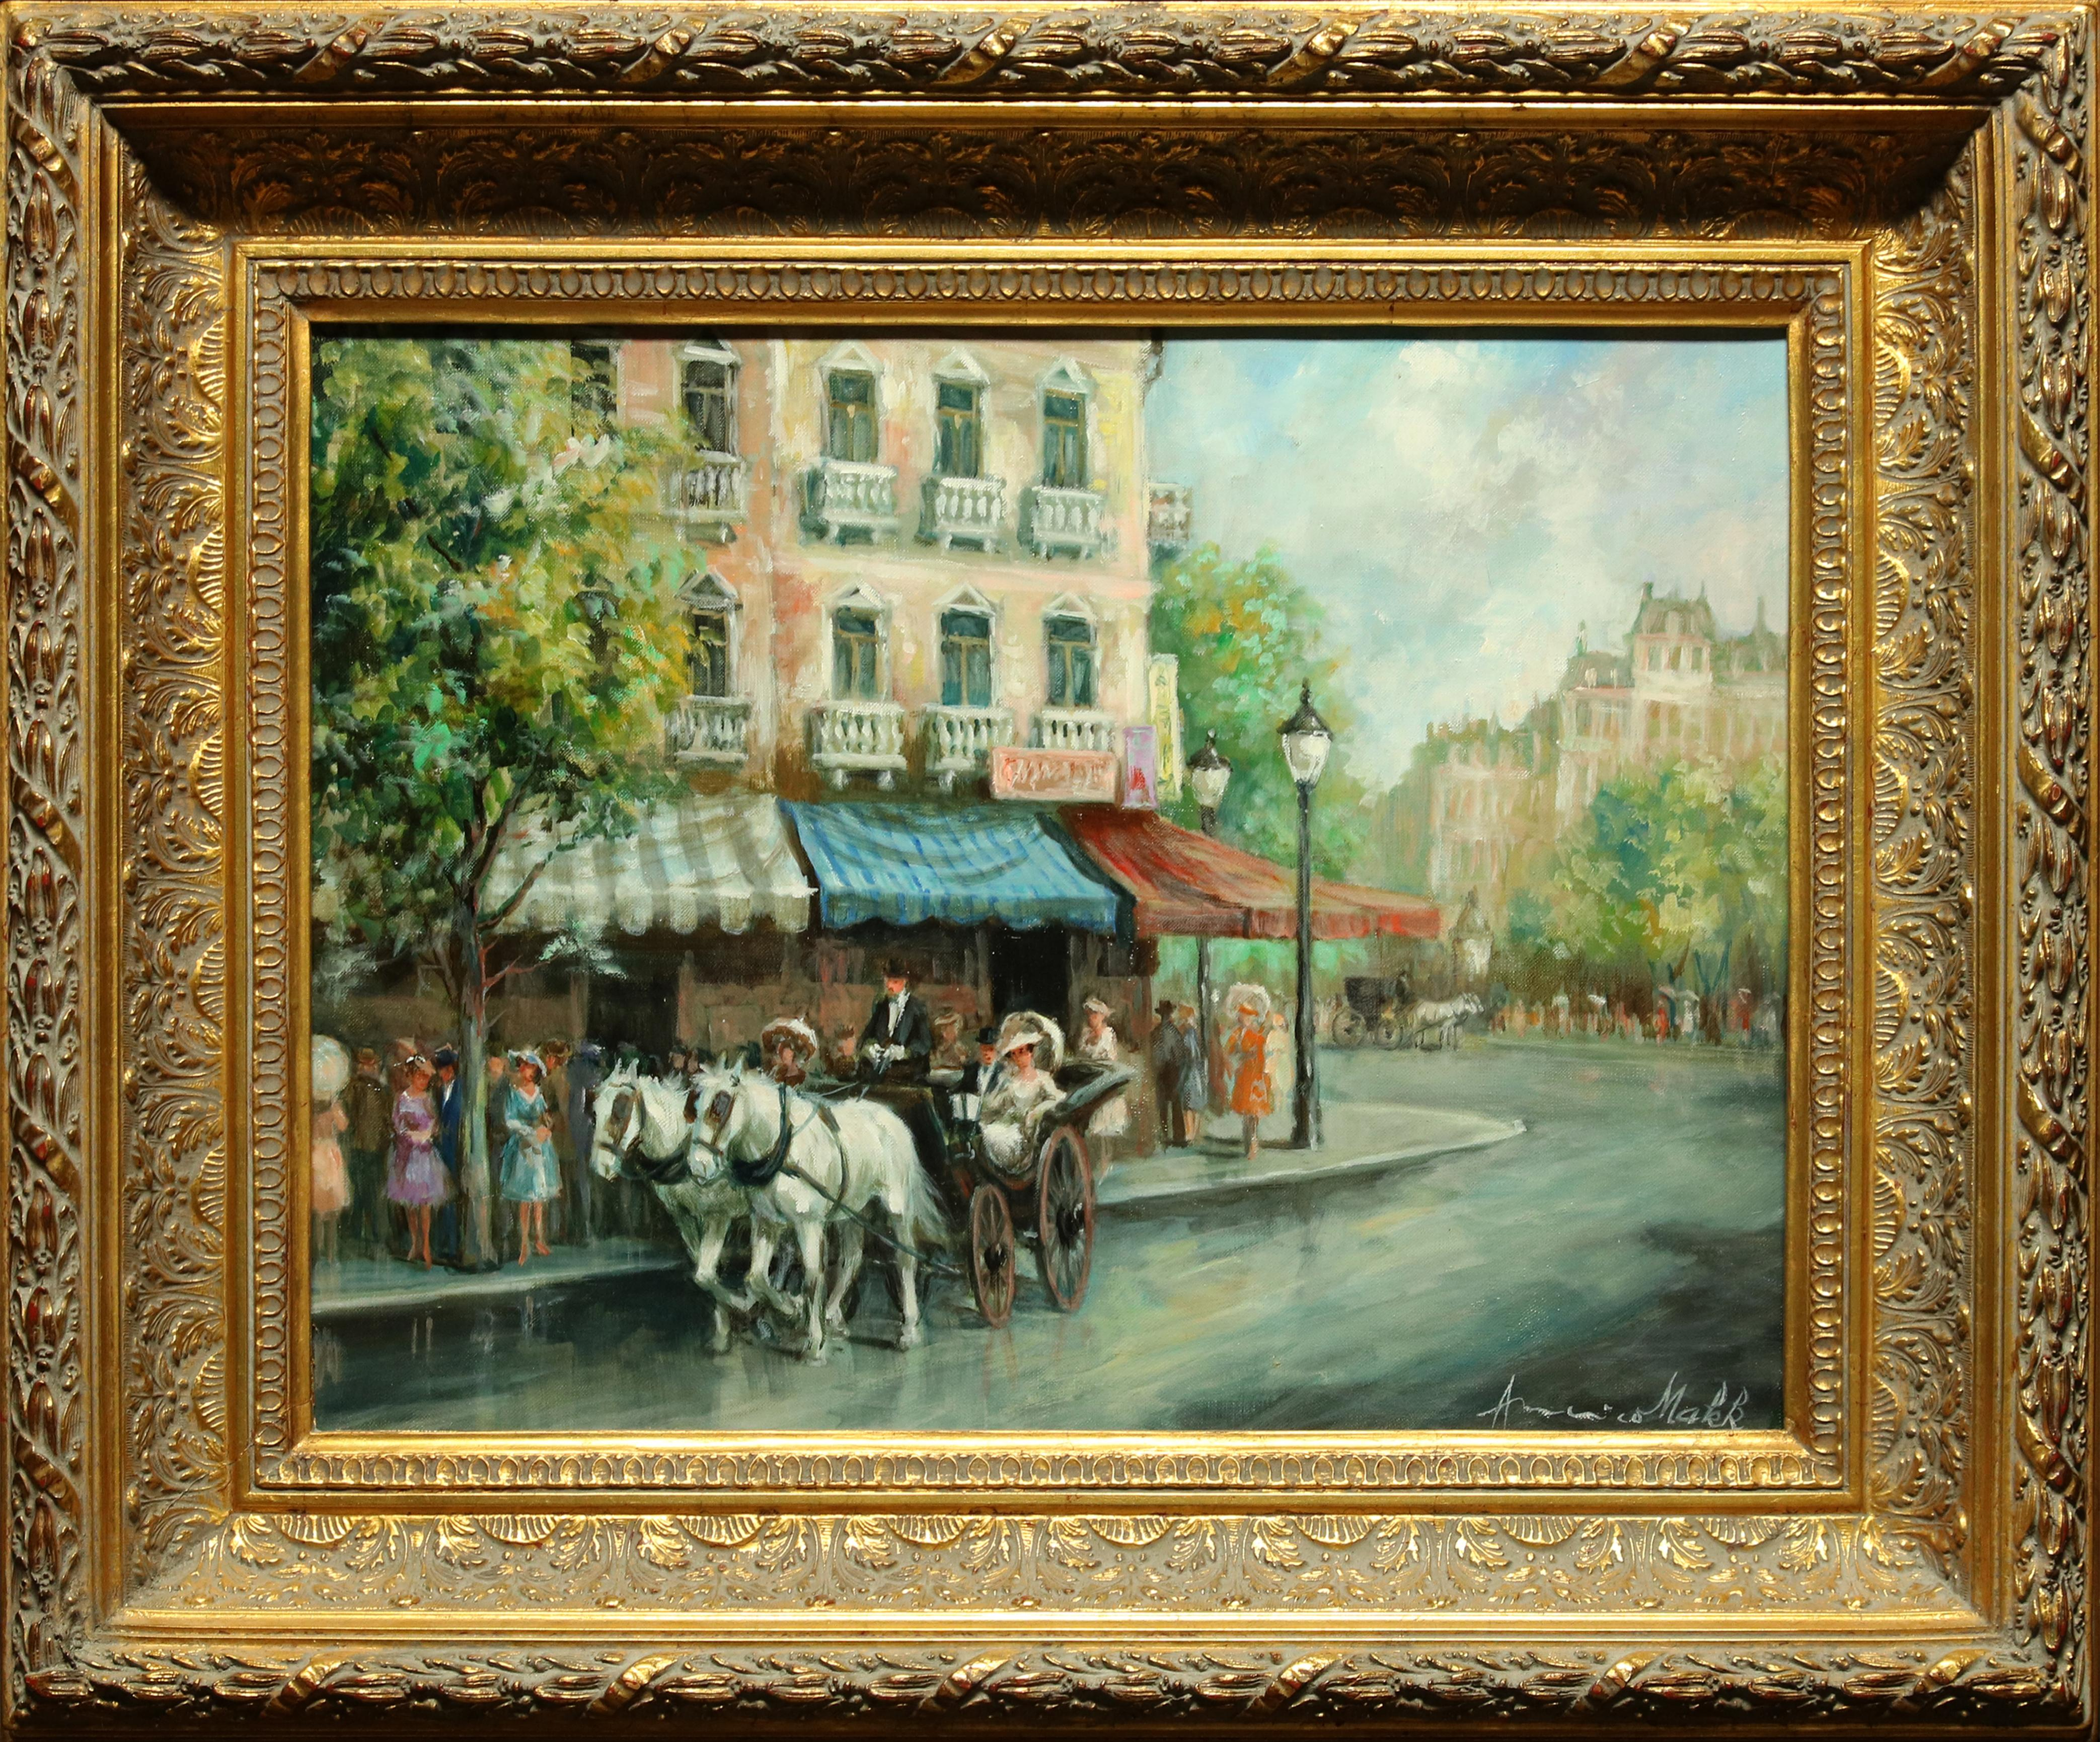 """""""Carriage Ride"""" by Americo Makk 24 x 18 inch oil on canvas"""